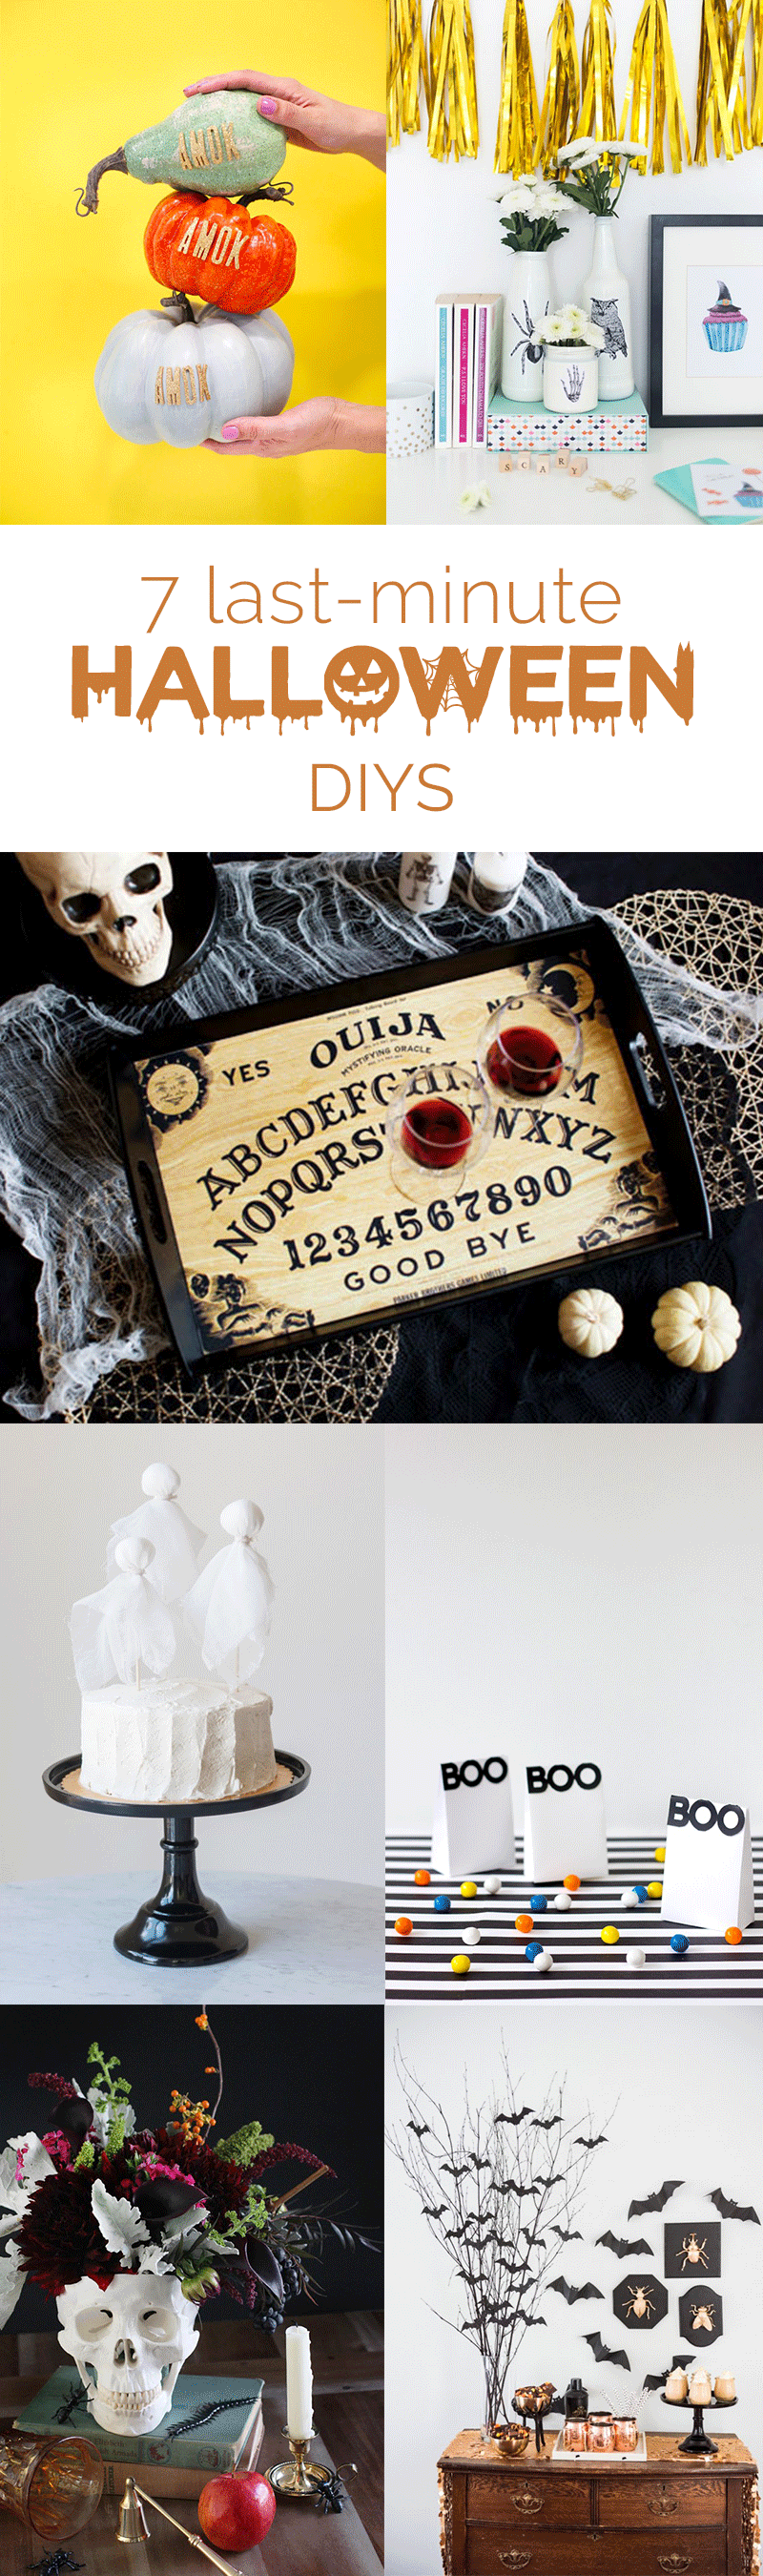 Halloween Decoration DIY Projects